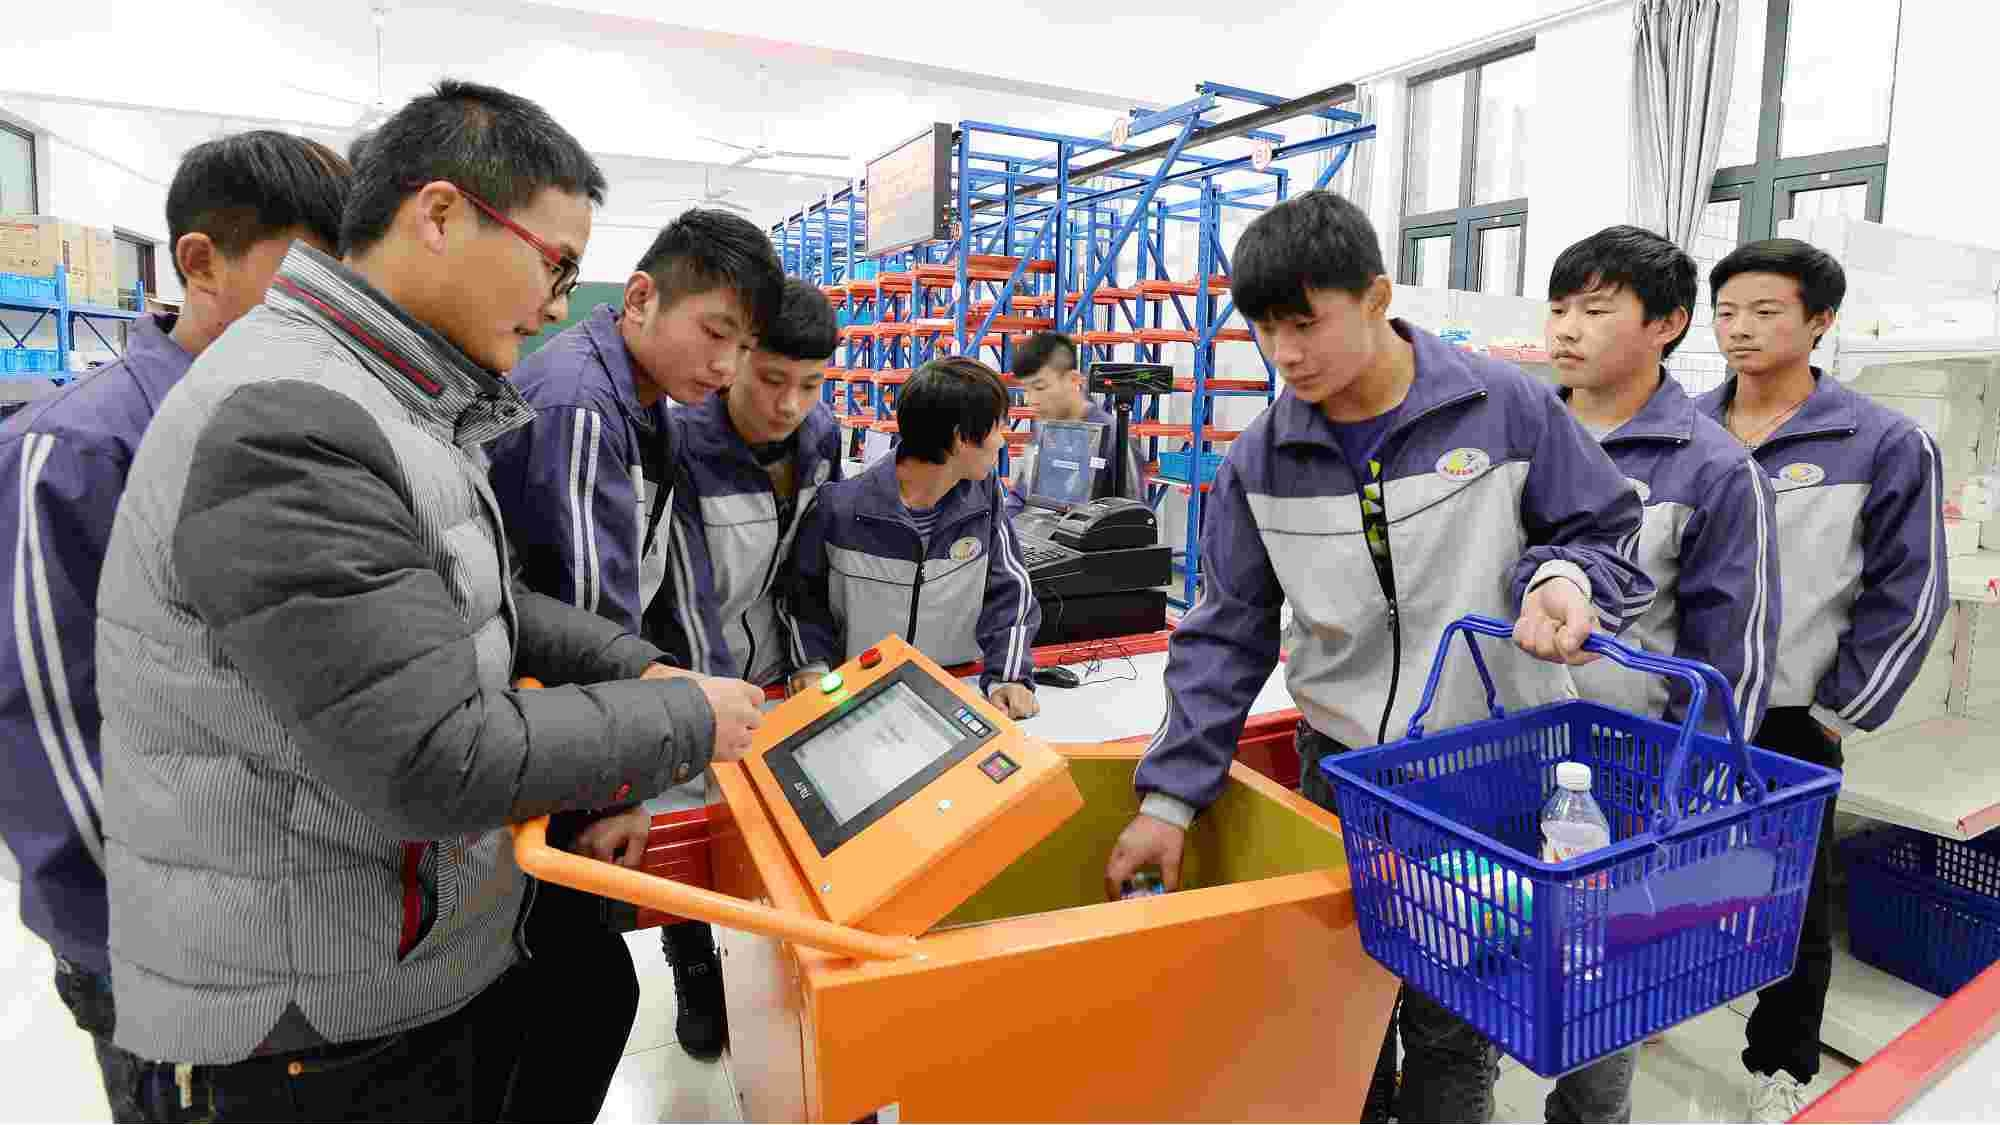 Vocational education helps with poverty alleviation in China: report